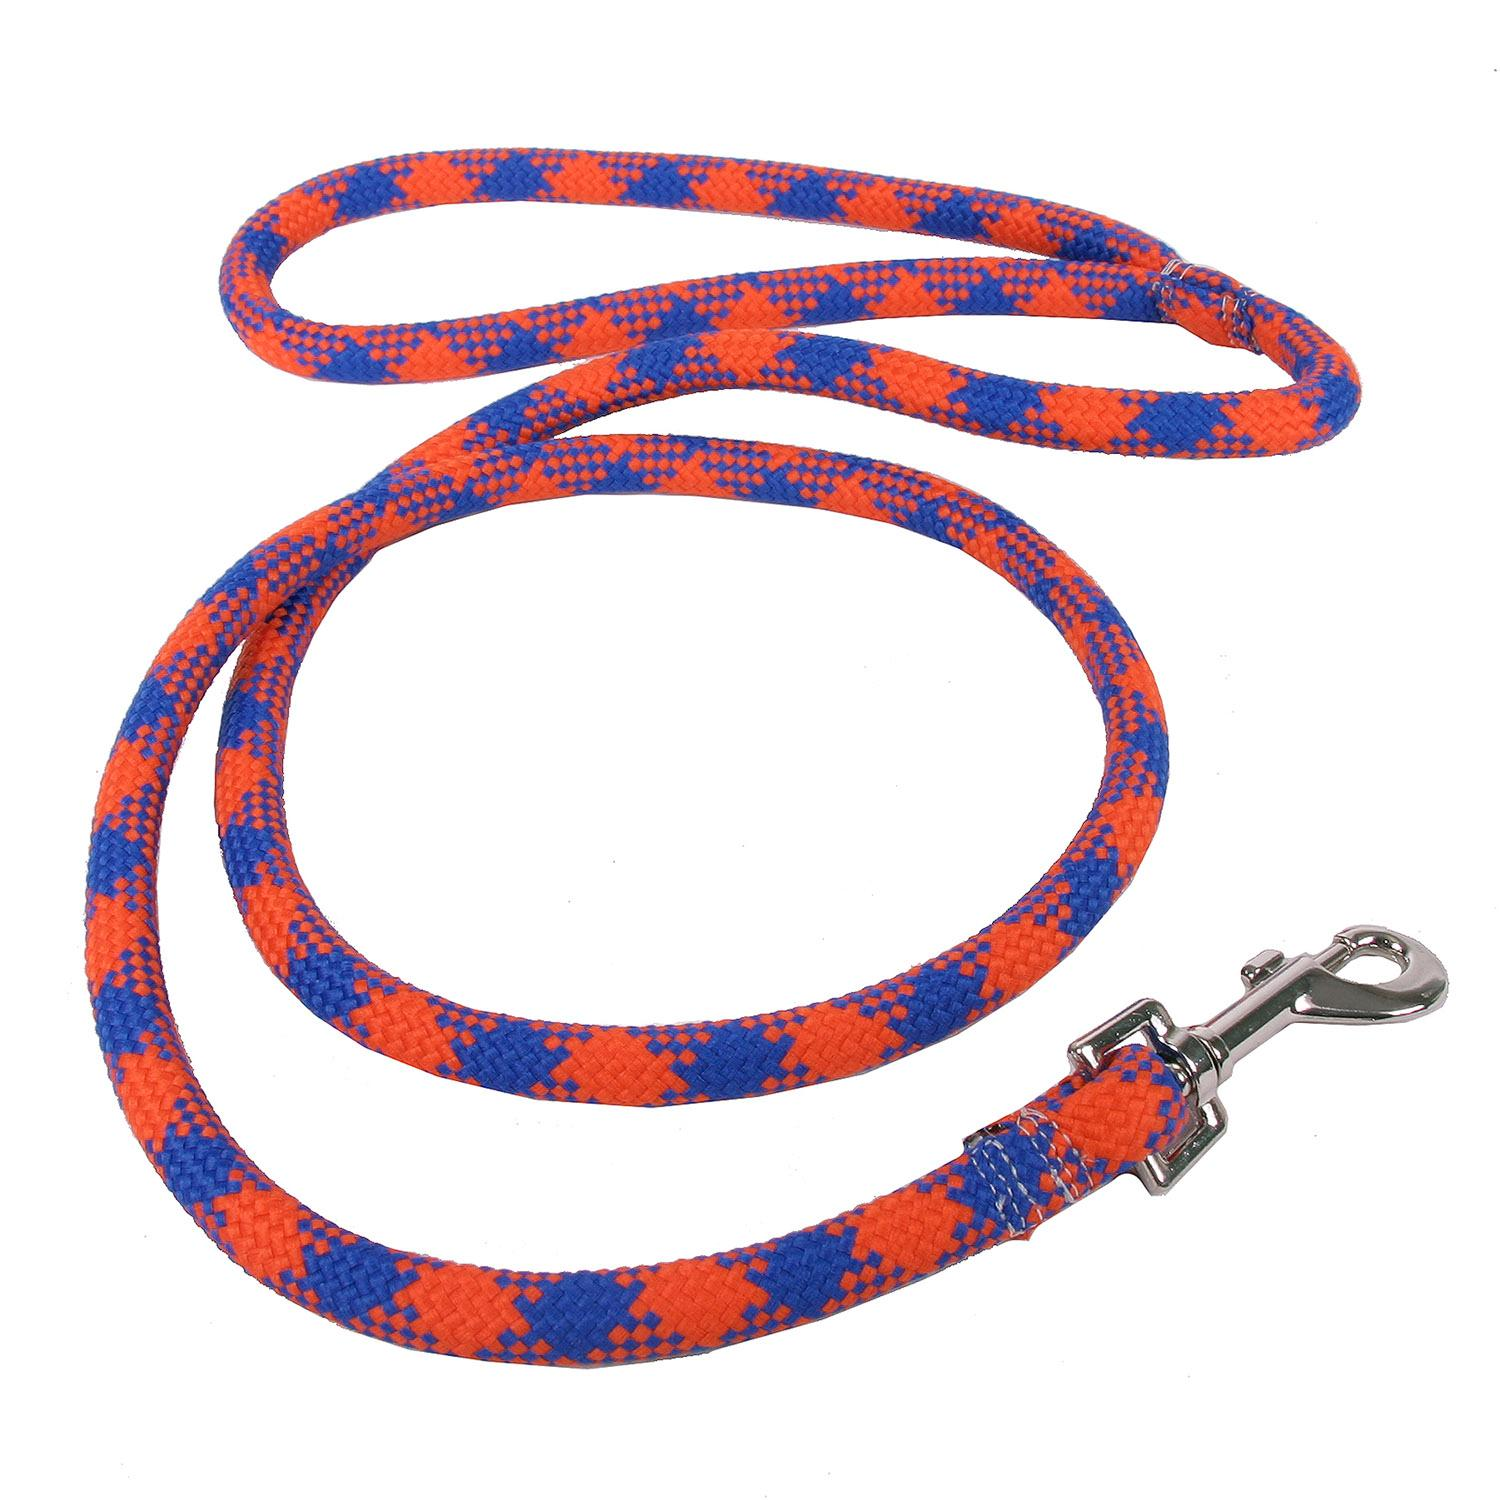 Round Braided Team Colors Dog Leash by Yellow Dog - Orange and Blue